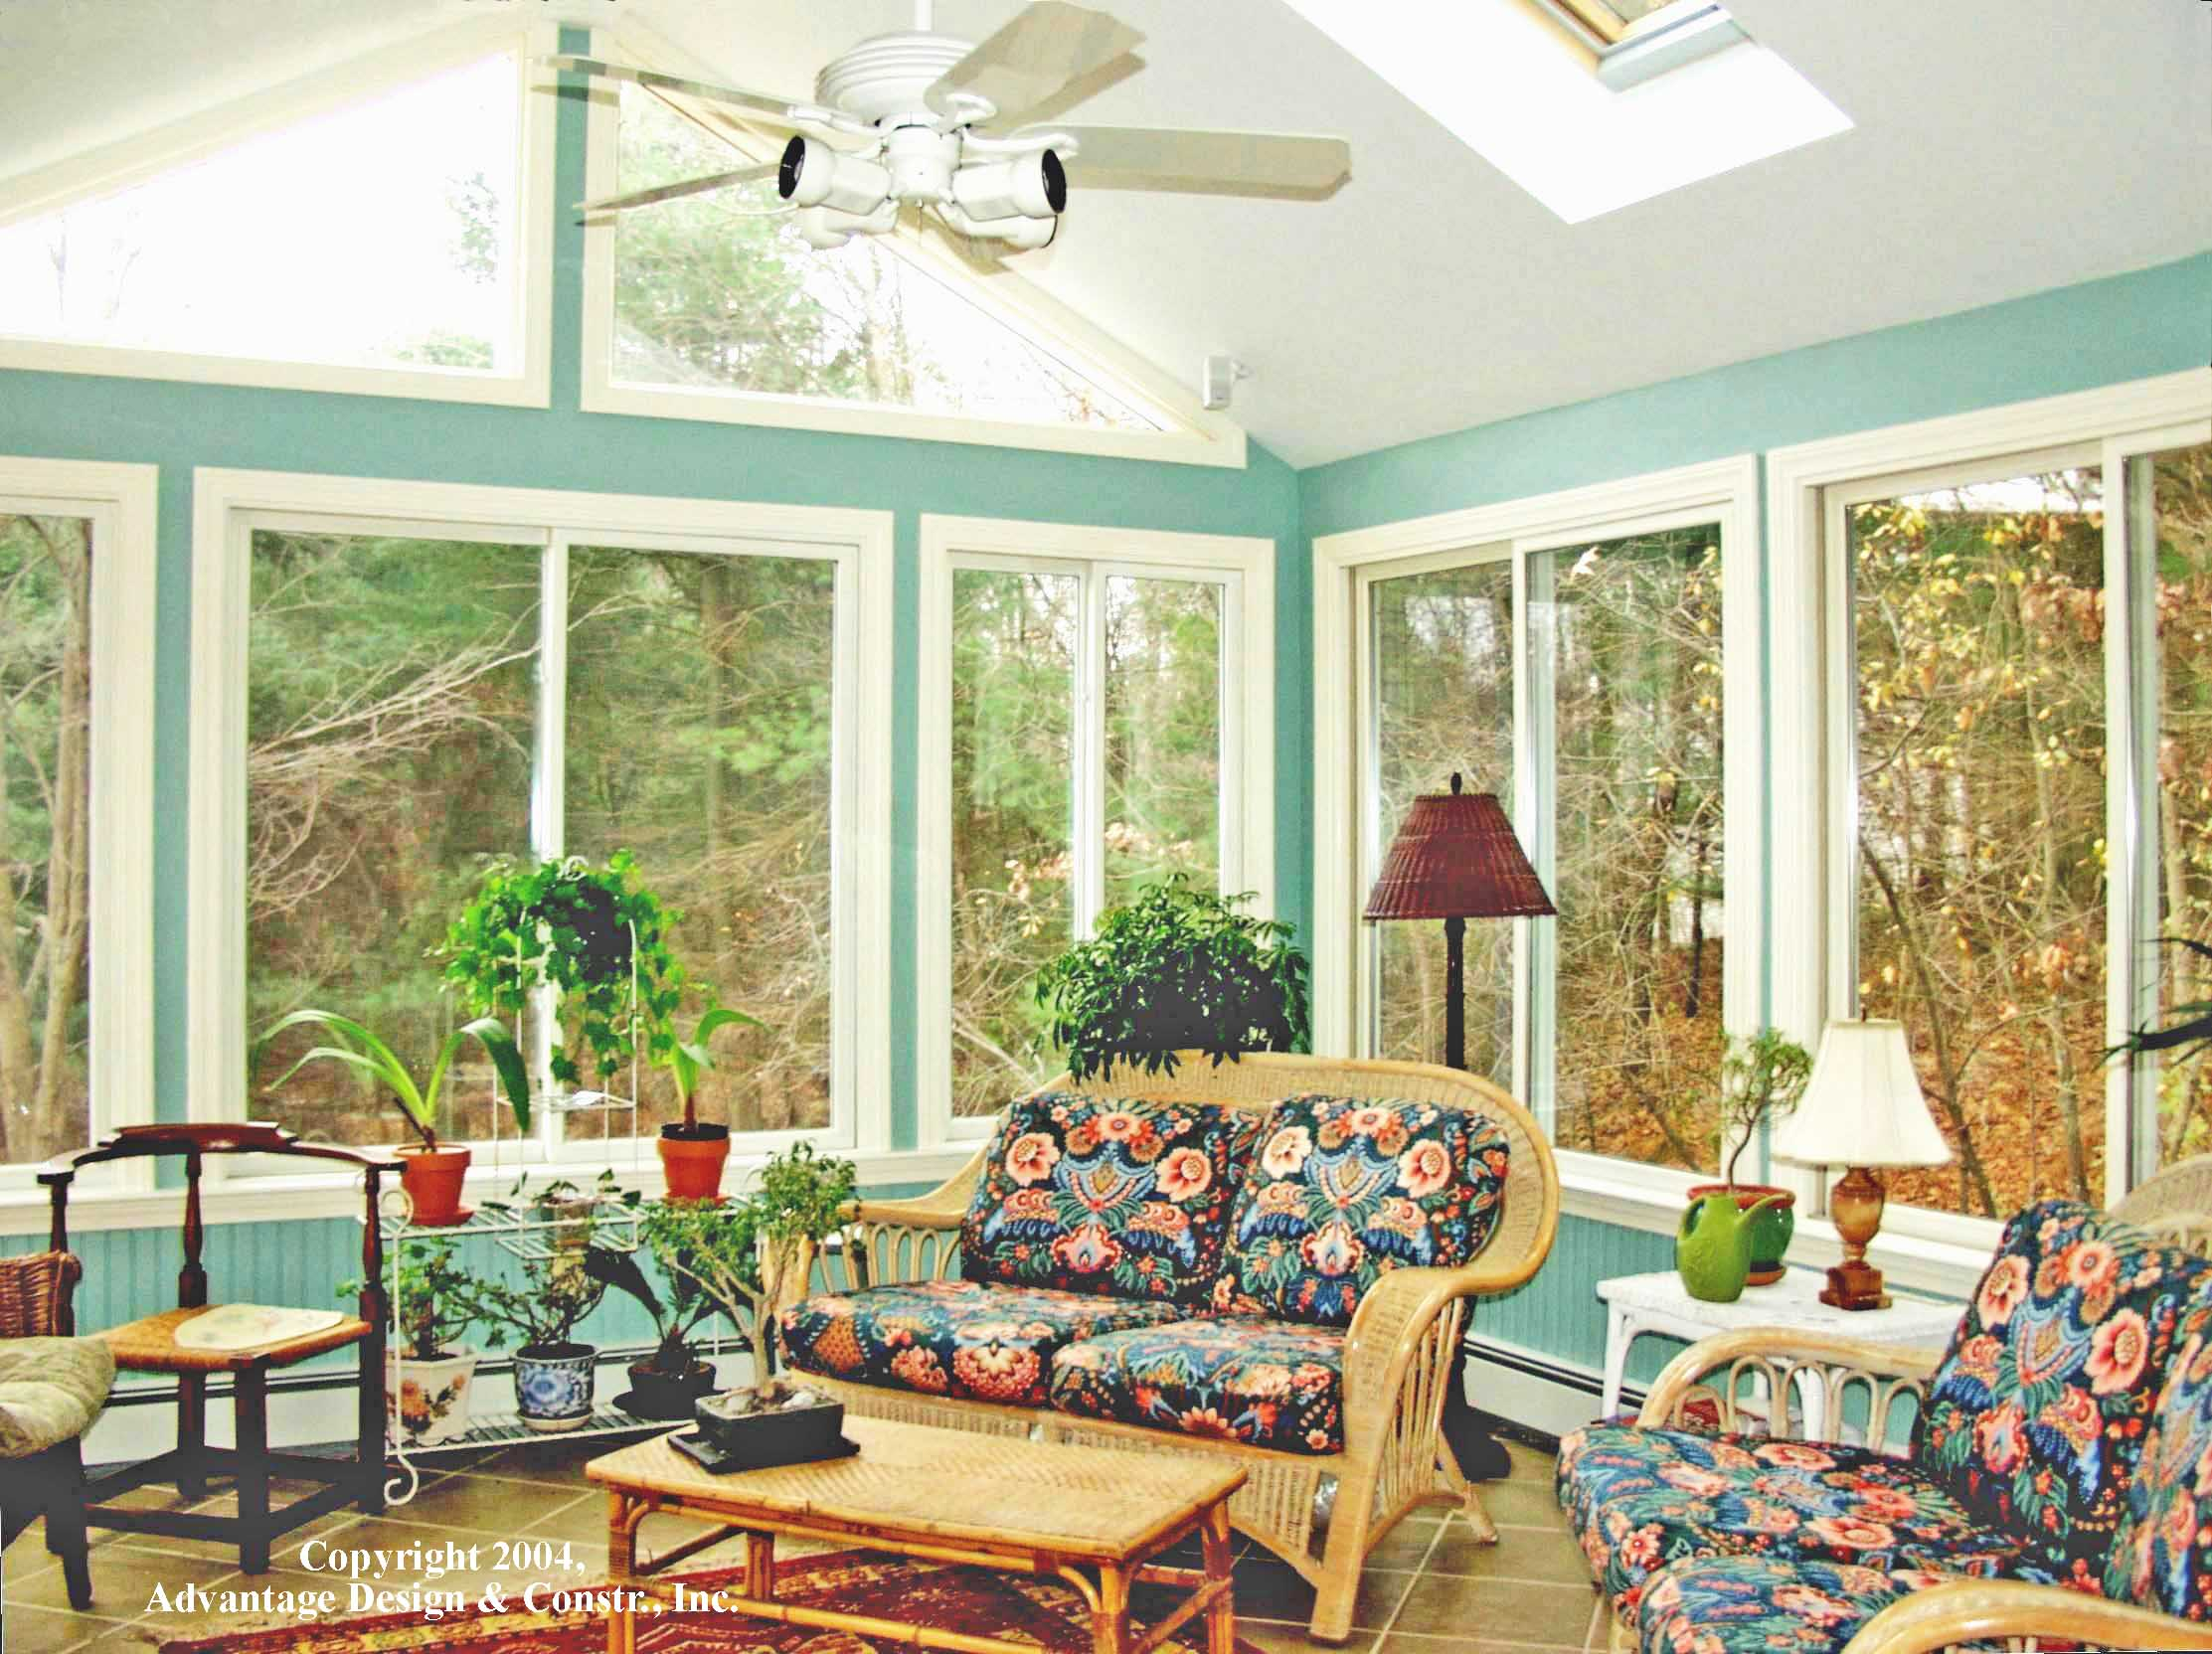 Sun Room 3 Key Features For A Super Sunroom Suburban Boston Decks And